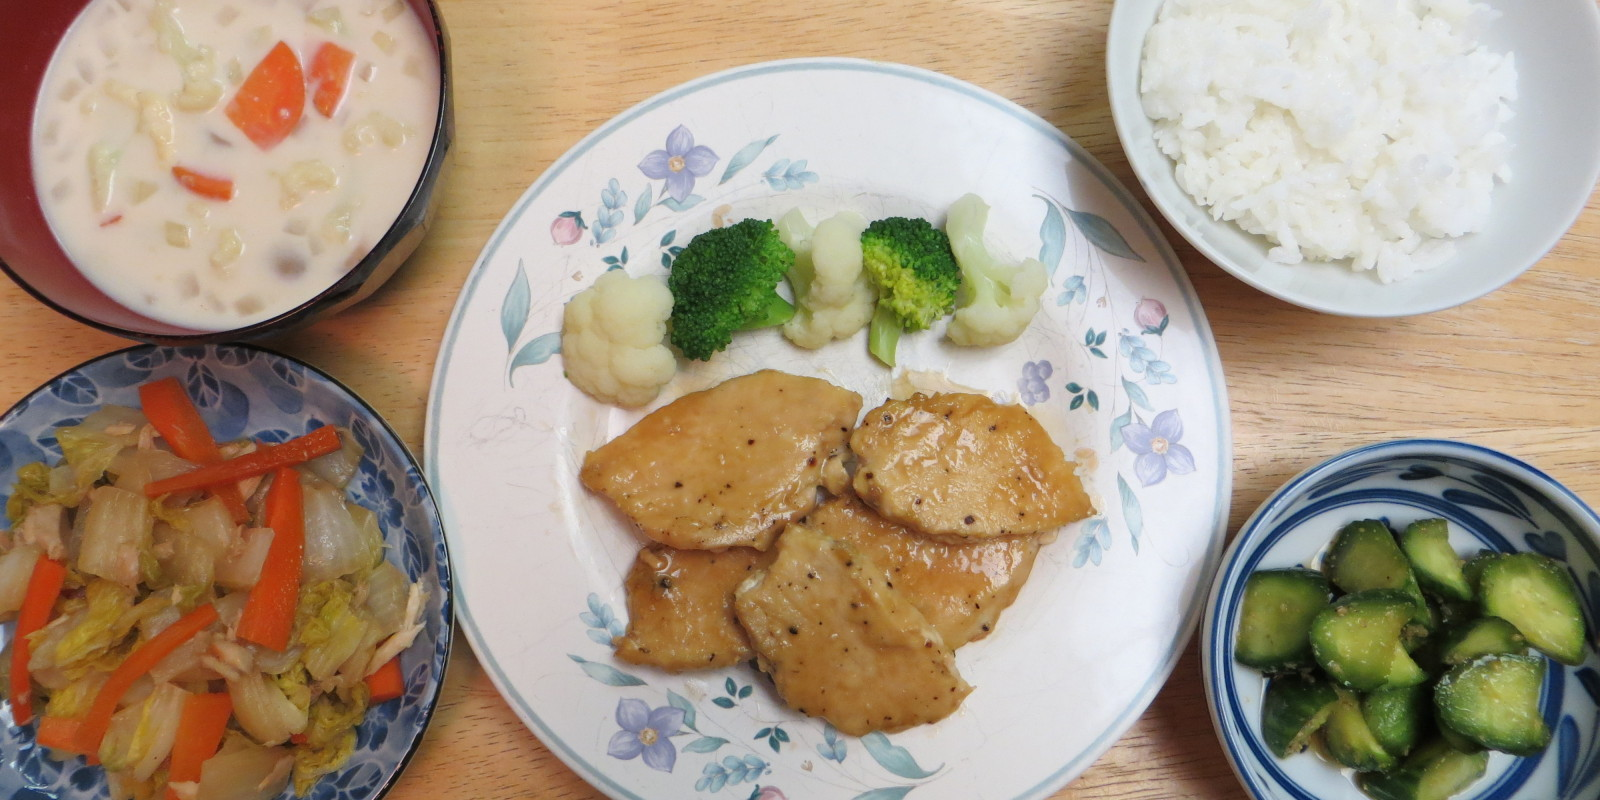 mayo soy sauce chicken image